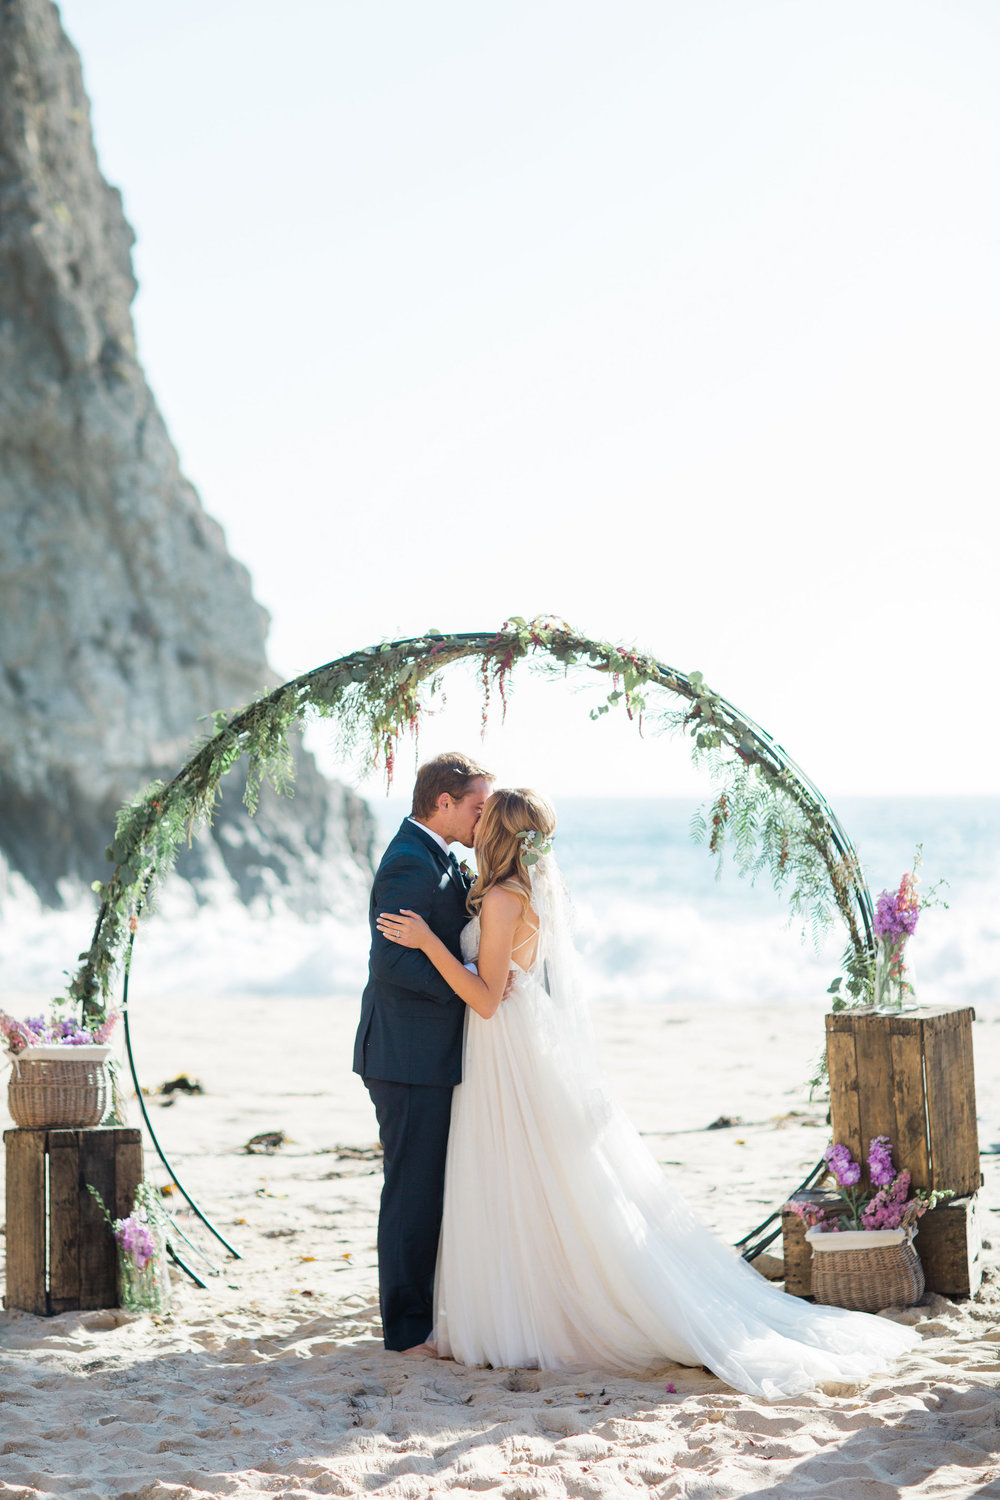 Venue- Crystal Cove State Park, Moro Cove, Laguna Beach, Ca; Photography- Lauriana Fortuna , Hair & Makeup- Roots Beauty